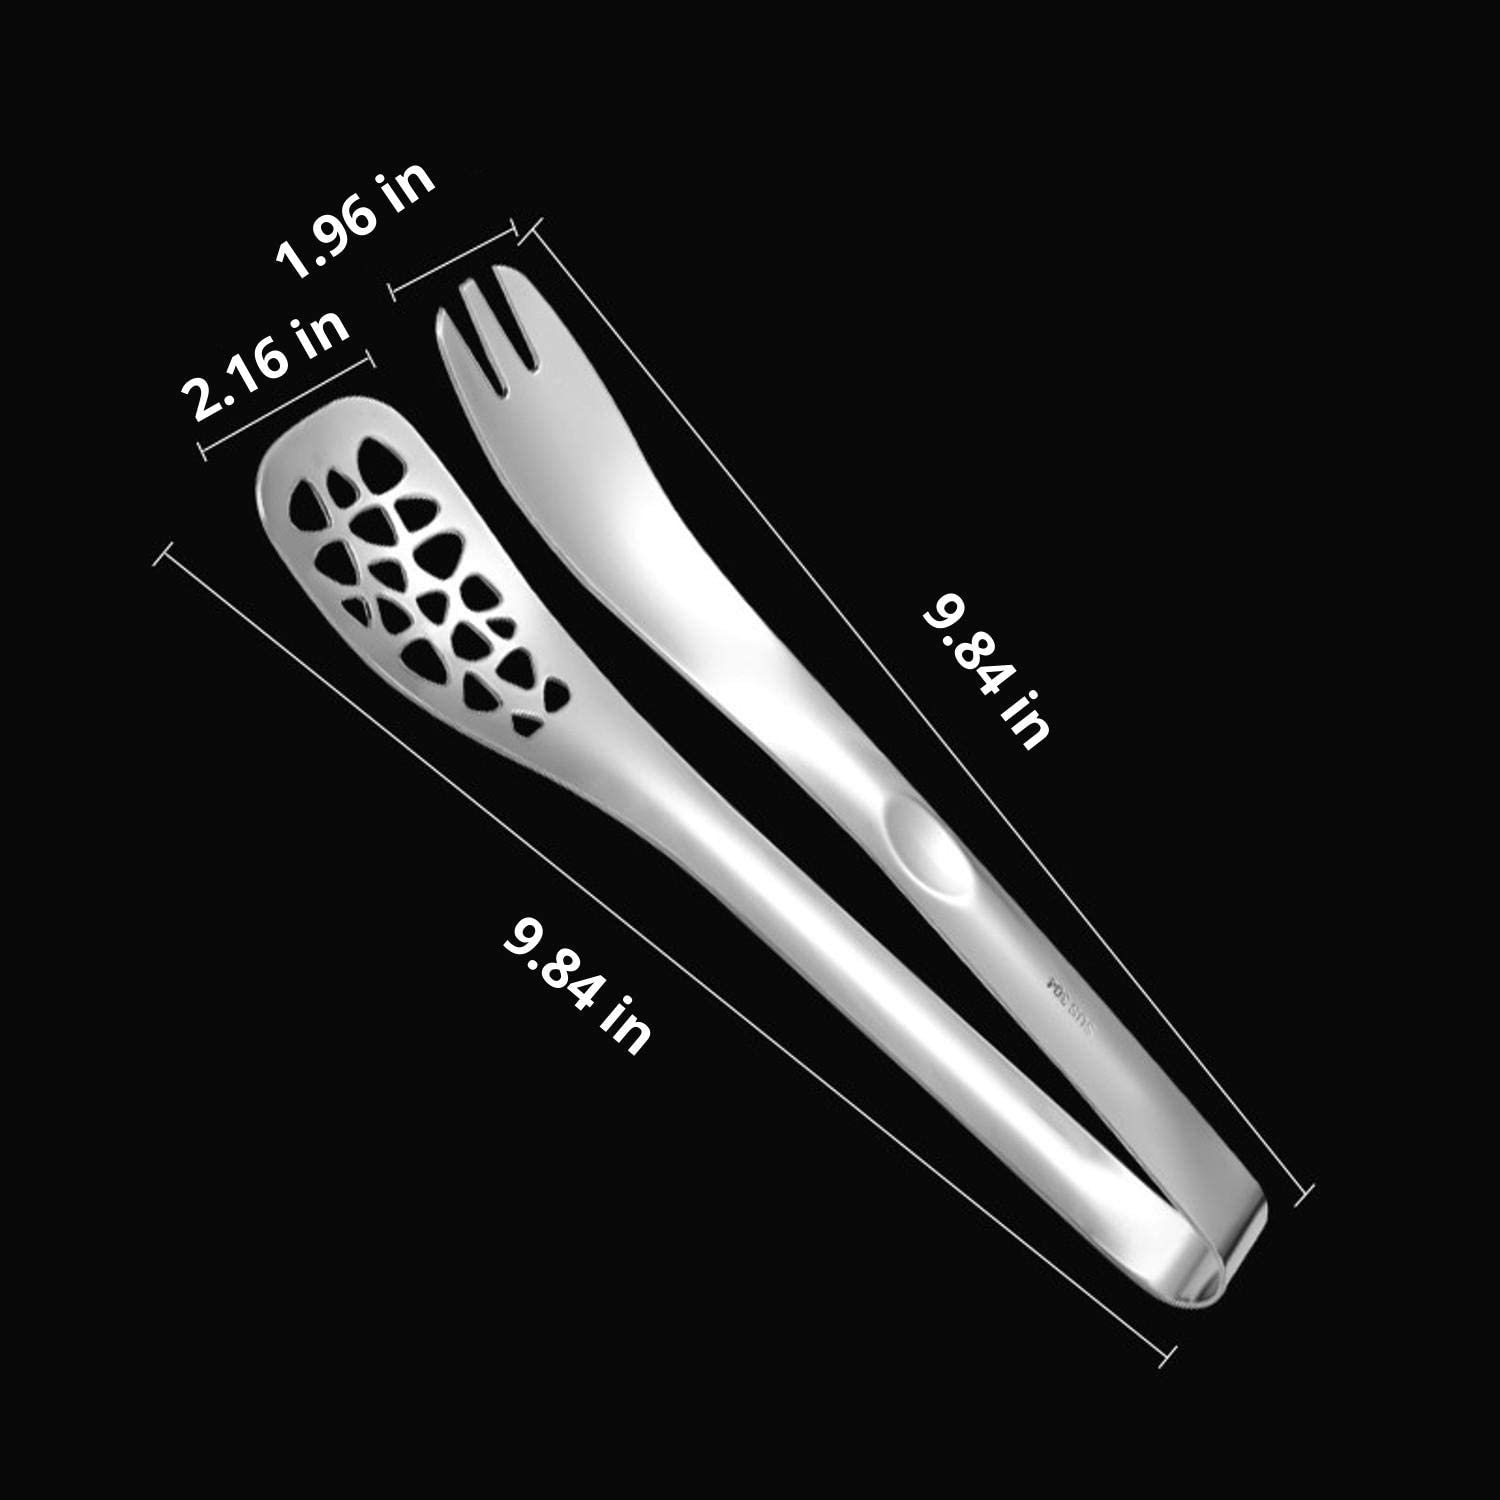 Multi-Purpose with Mesh Hole Clamp Tongs for Cooking Grilling Pastry BBQ Tongs Salad Tongs. Heat Resistant Locking Tongs Kitchen Tongs 10 Inch New Premium Heavy Duty Stainless Steel Tongs